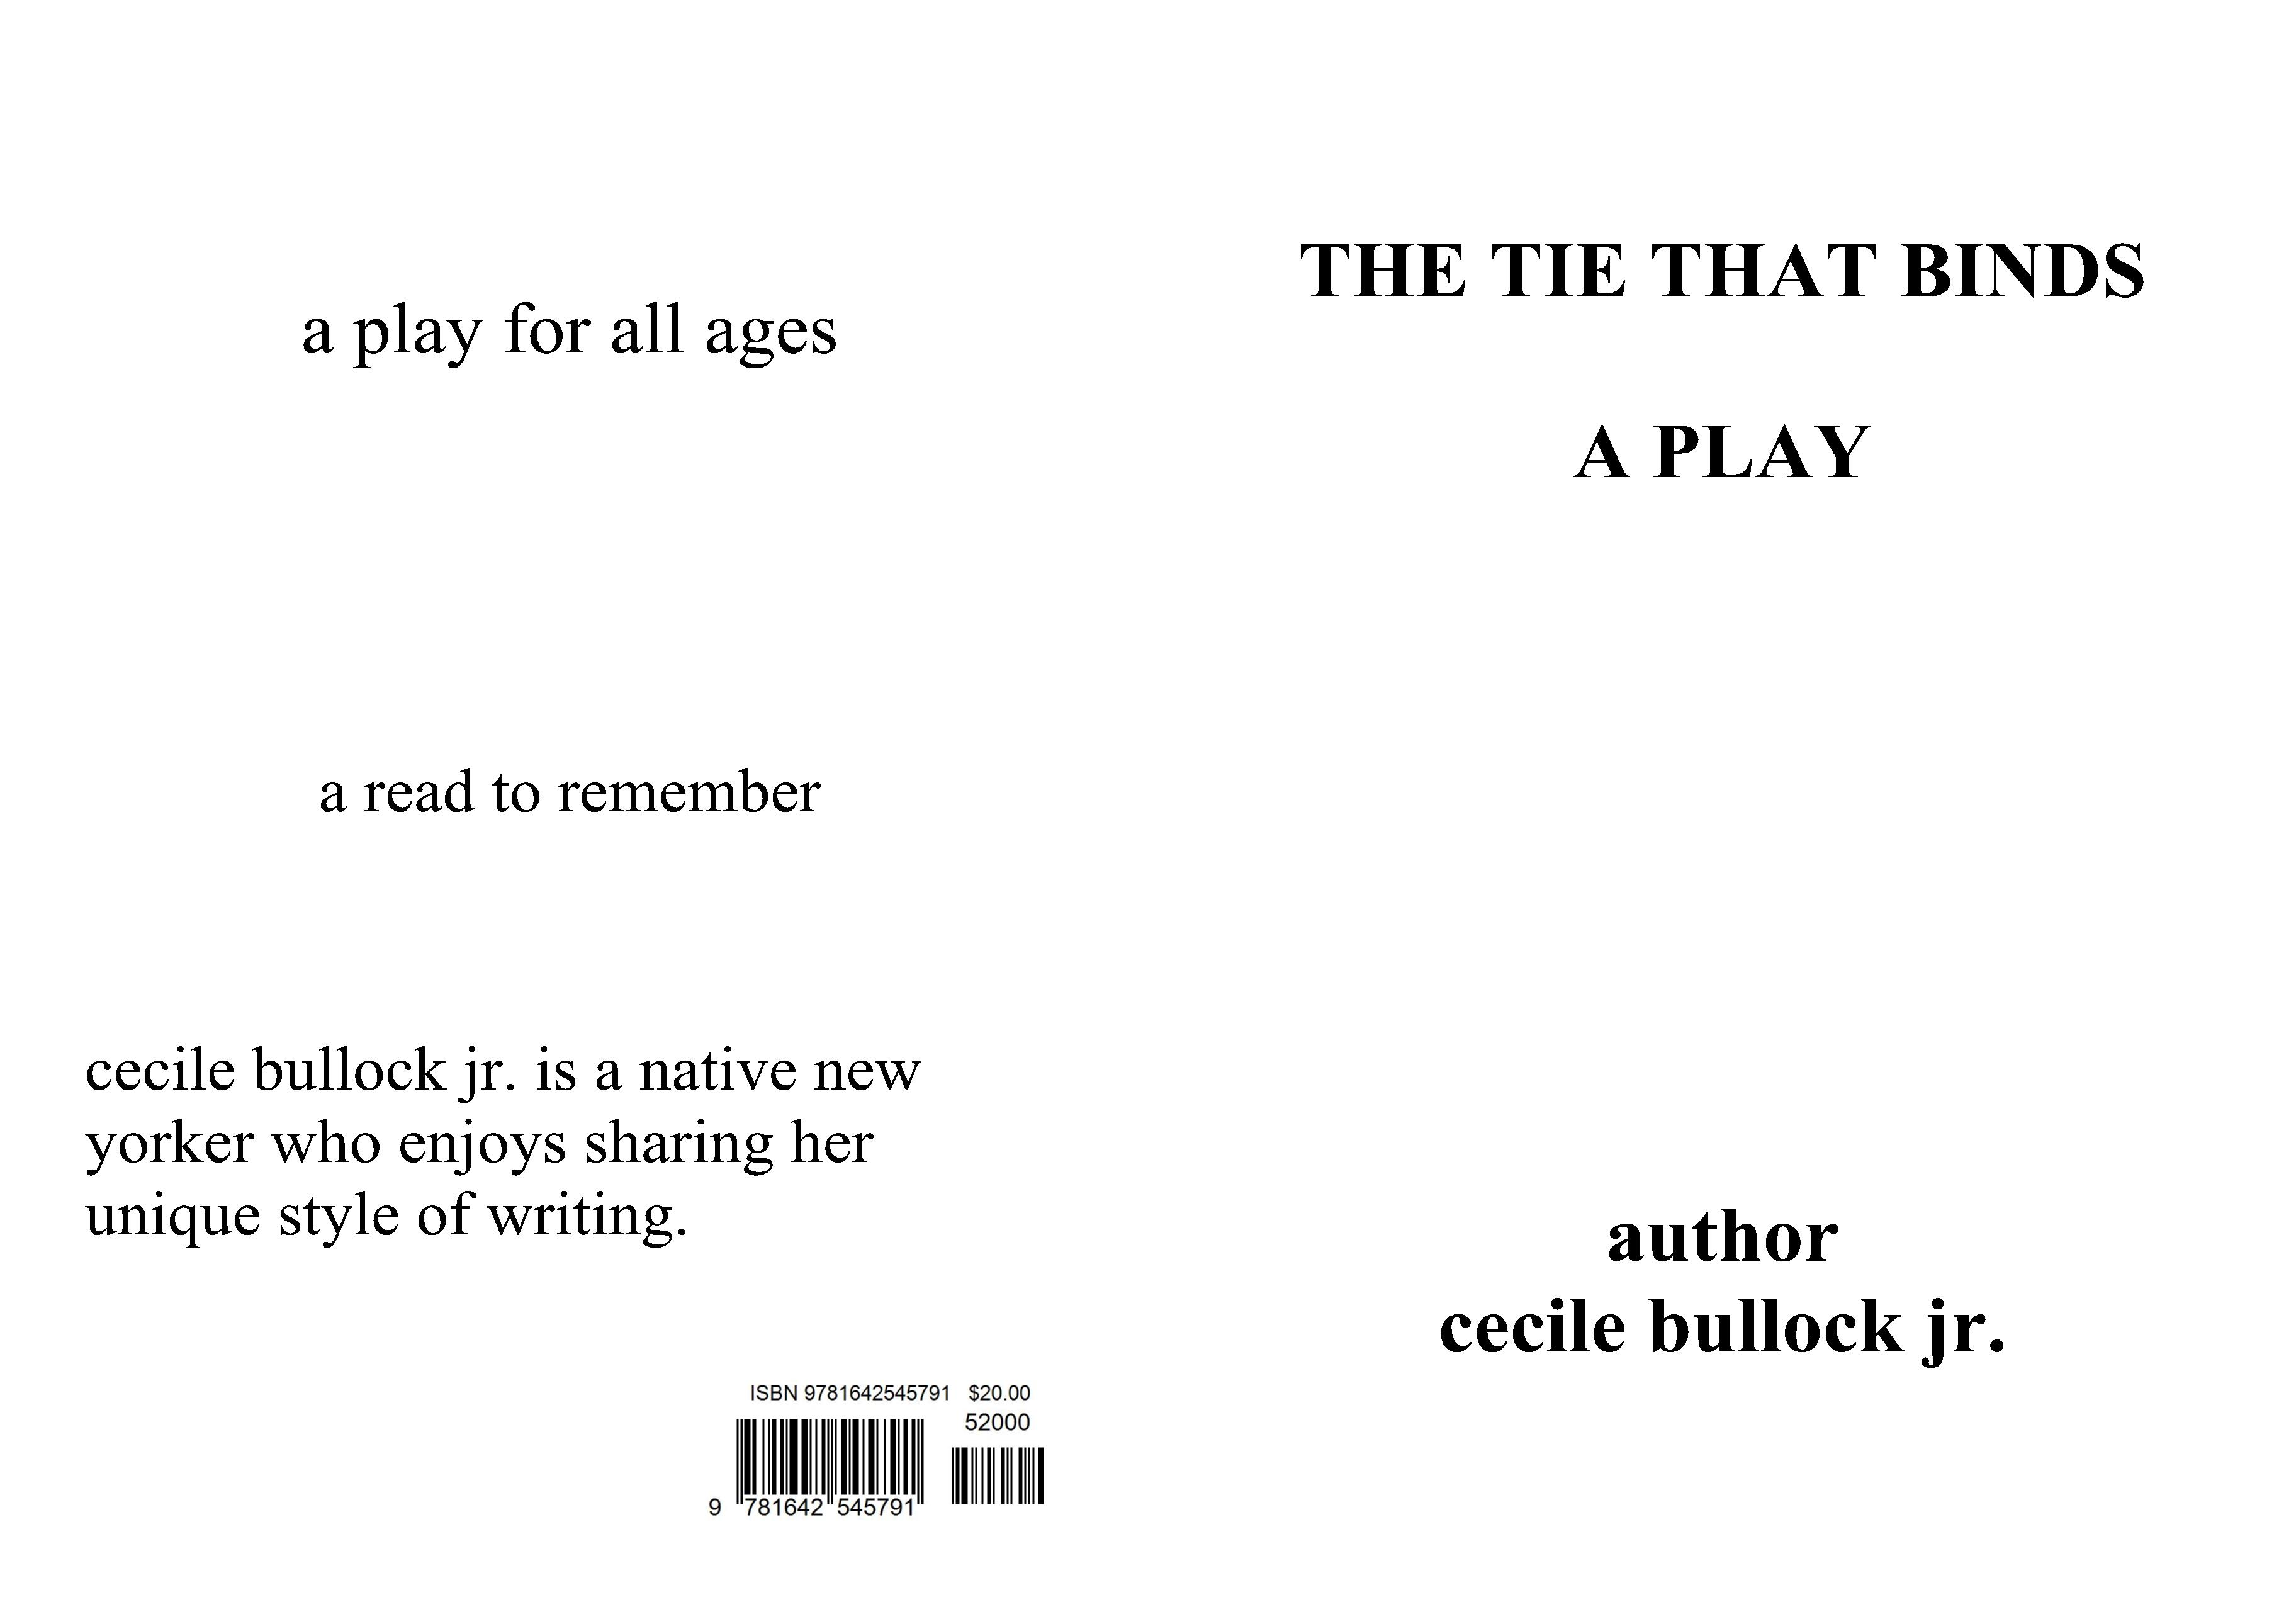 THE TIE THAT BINDS A PLAY the tie that binds a play a play cover image